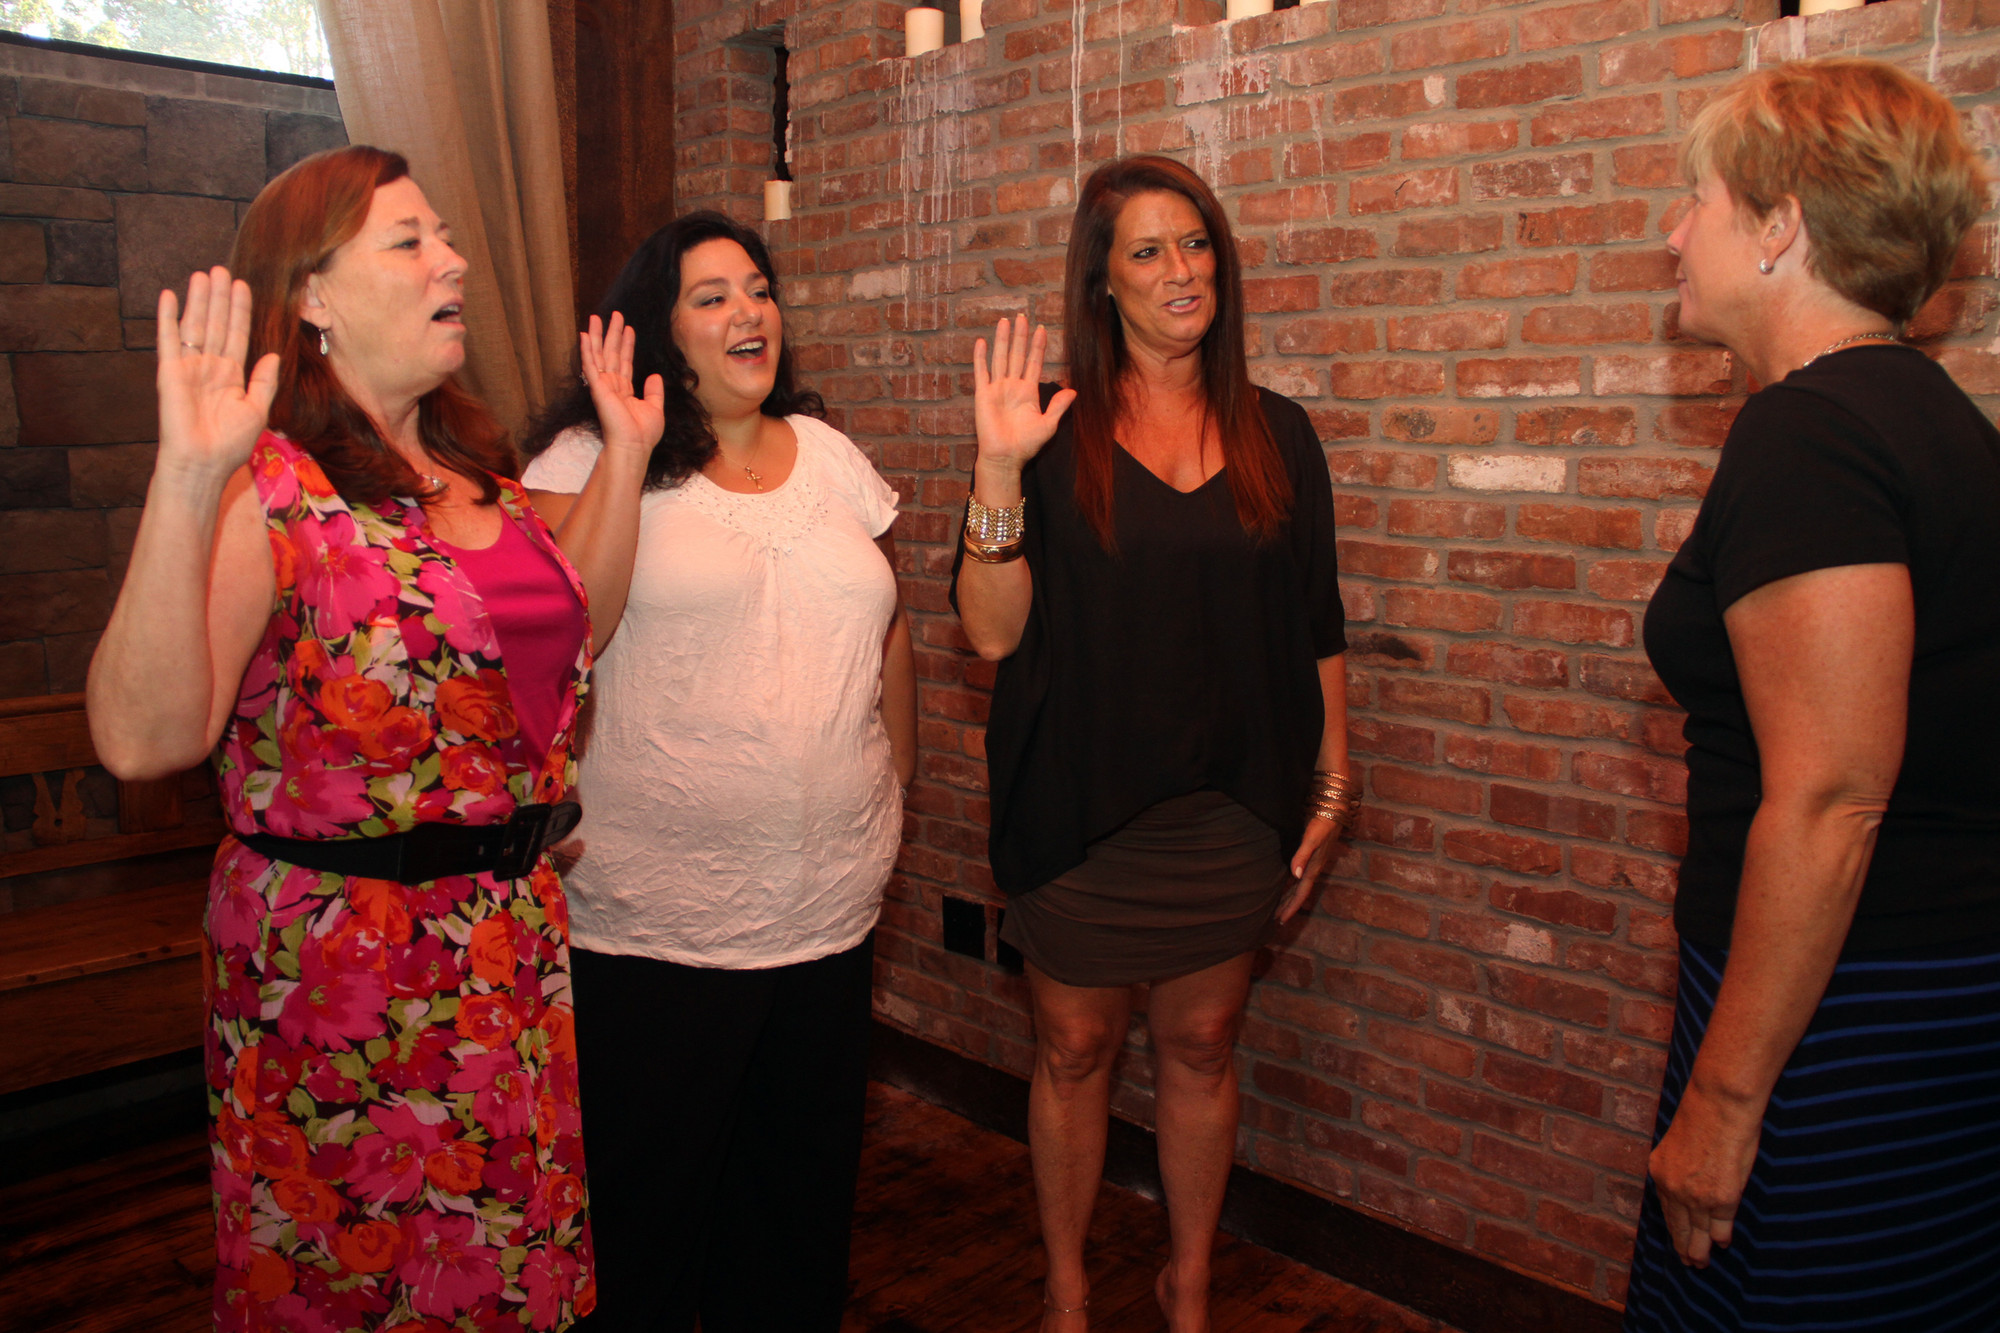 Mayor Patti McDonald swears in Rotary Club President Kathi Monroe, Secretary Anna Marie Redmond and Treasurer Judi Puma.